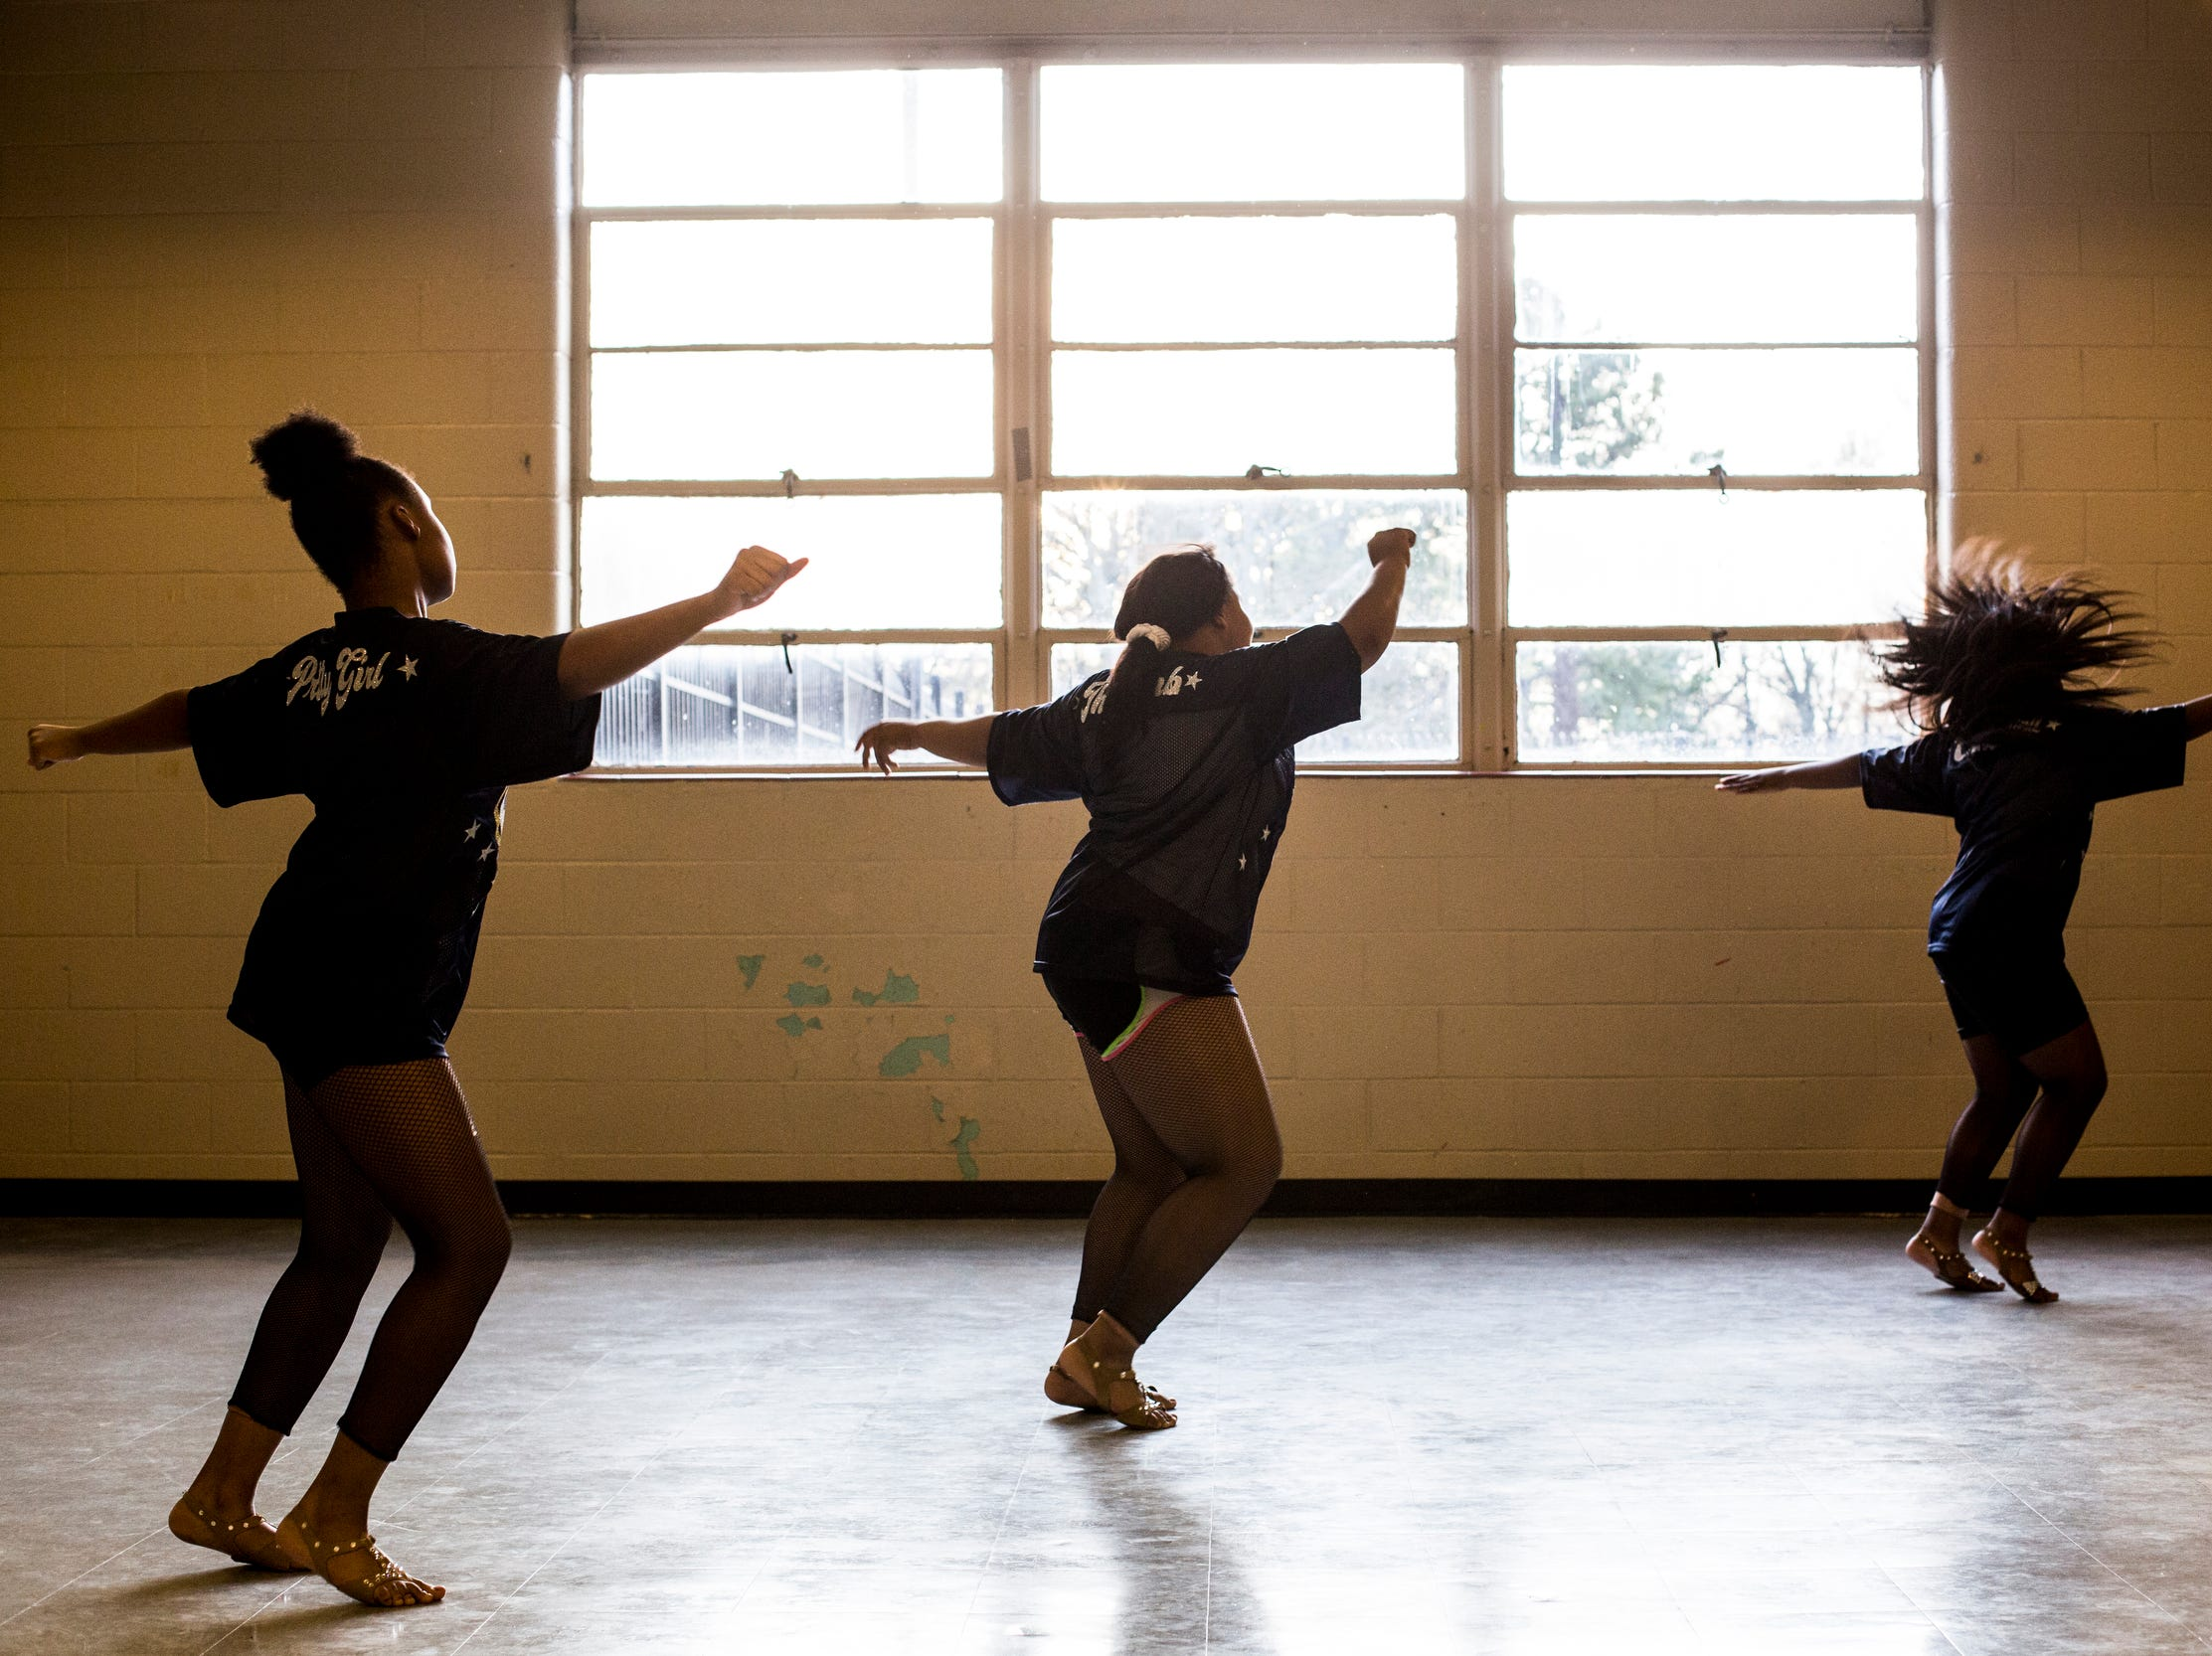 Members of the Memphis Community Youth Mighty Marchers, from left, Angel Mitchell, 12, LaNordia Fletcher, 13, and Maya Cole, 17, work on their dance moves during a practice at the Ed Rice Community Center in Frayser on March 28, 2019.